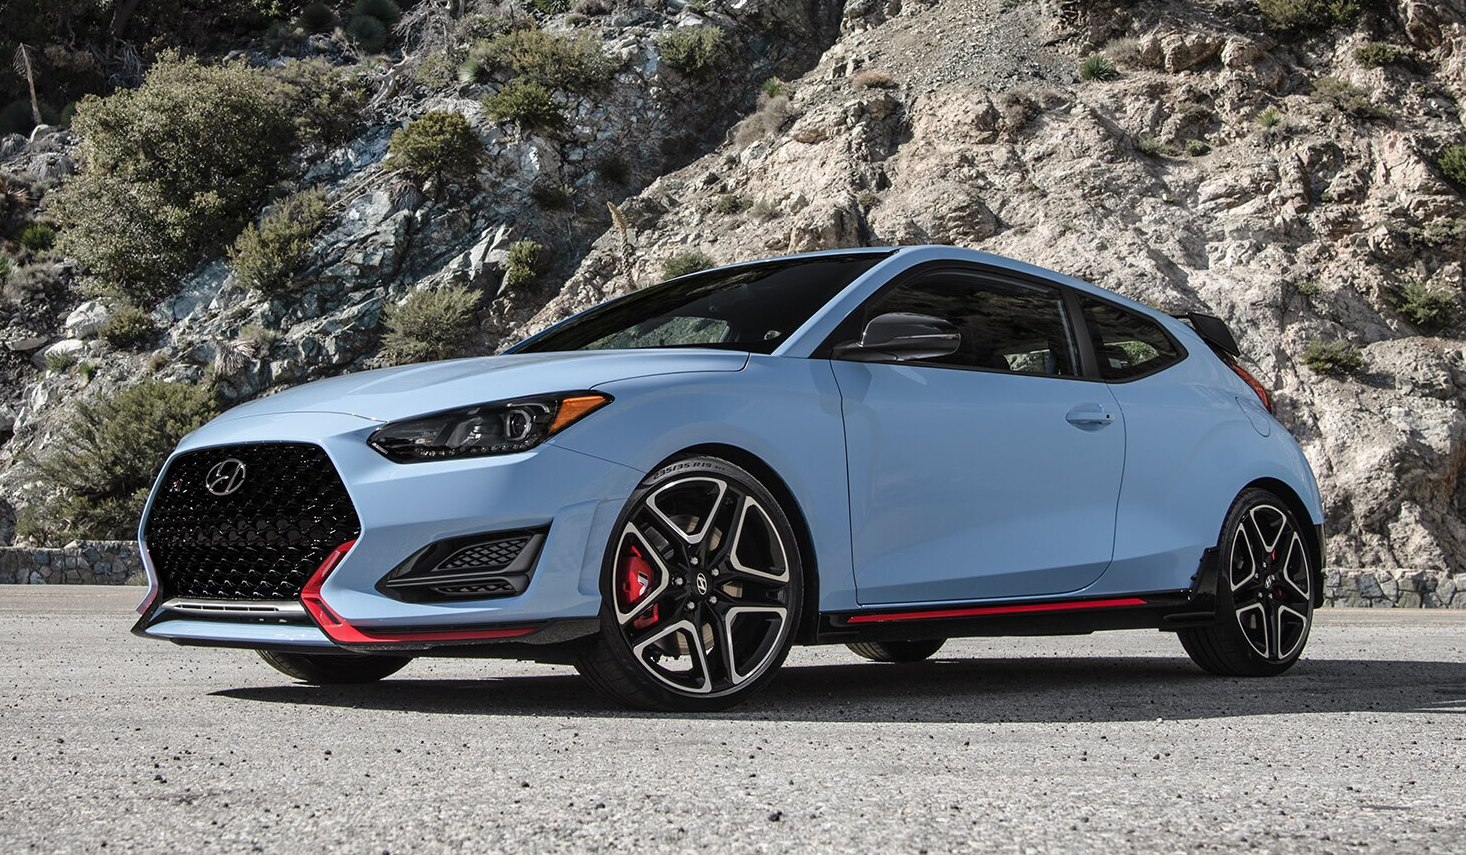 Jeep Wagoneer 2018 >> 2019 Hyundai Veloster N Long-Term Update 1: It's F-U-N | Automobile Magazine - Automobile